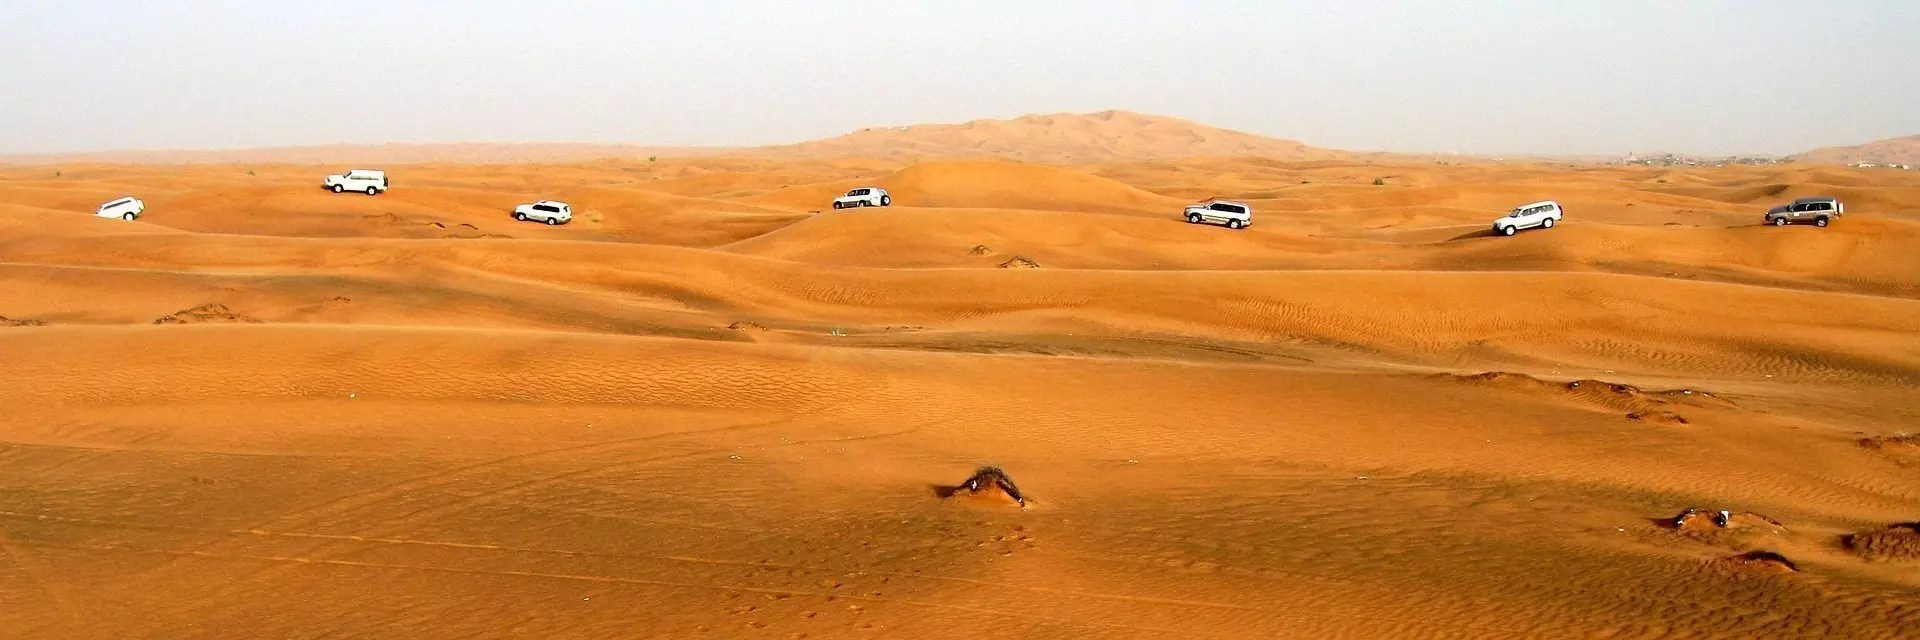 Safari Dubai